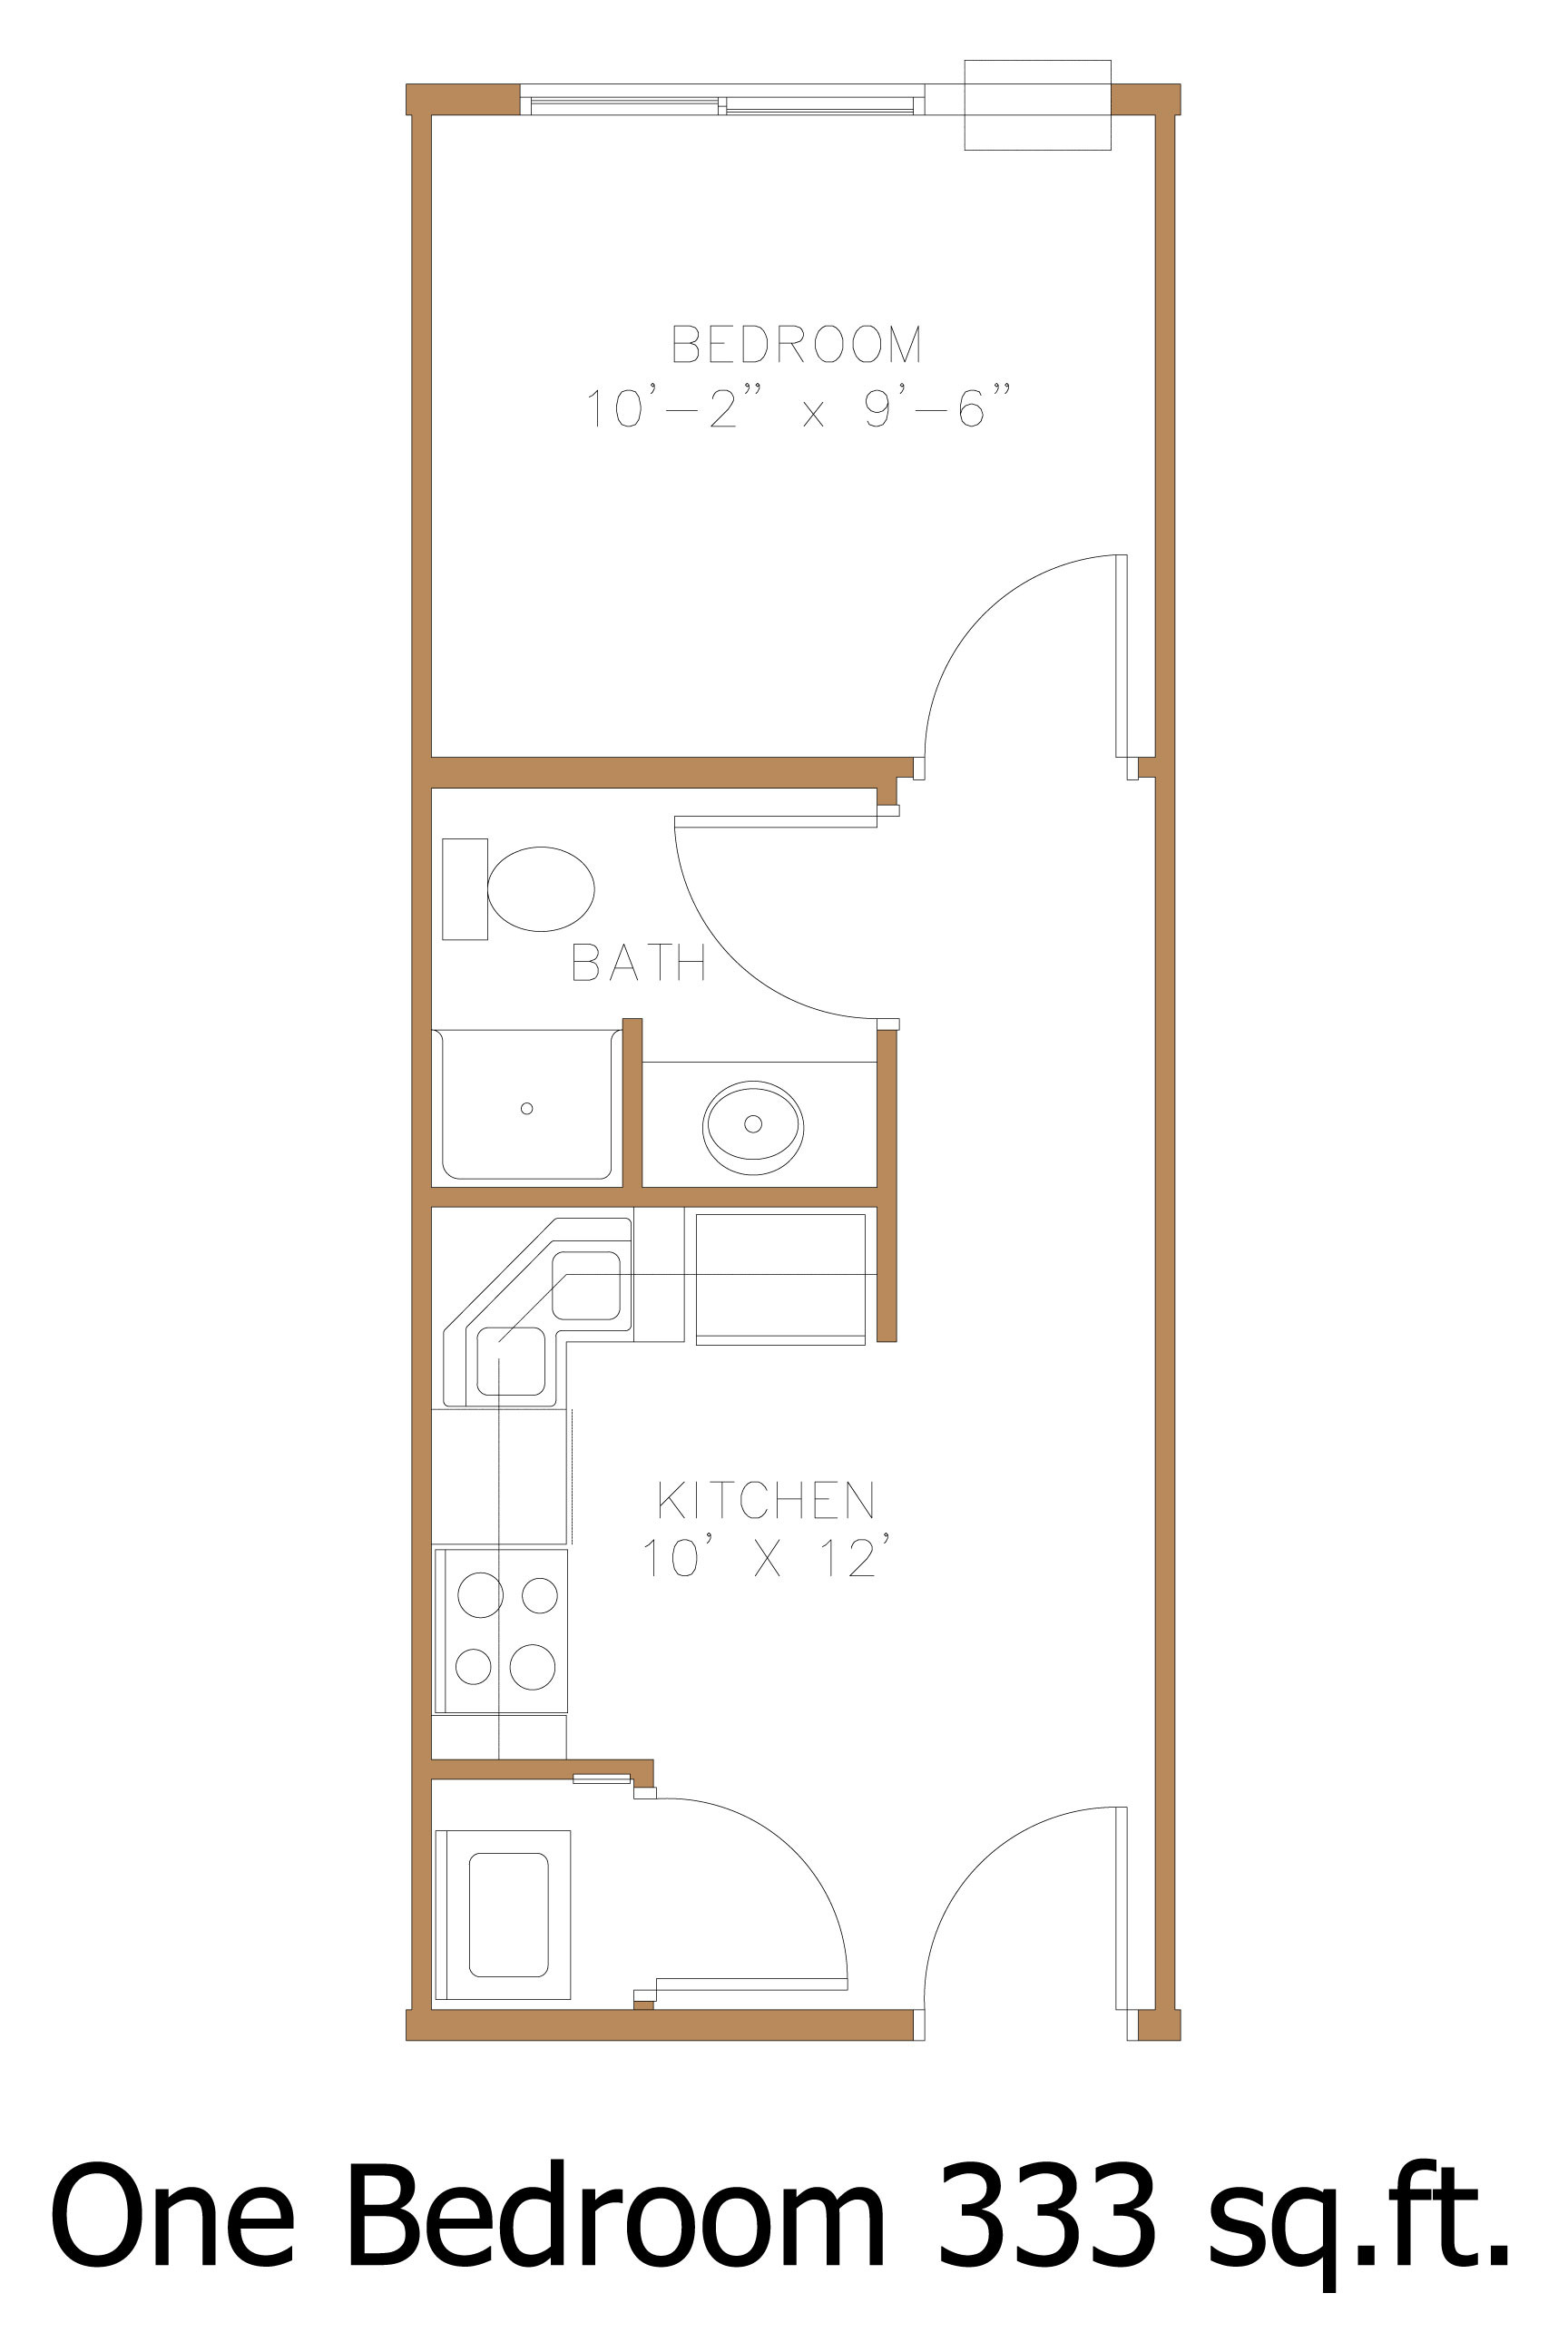 Hawley mn apartment floor plans great north properties llc - Floor plan for one bedroom ...